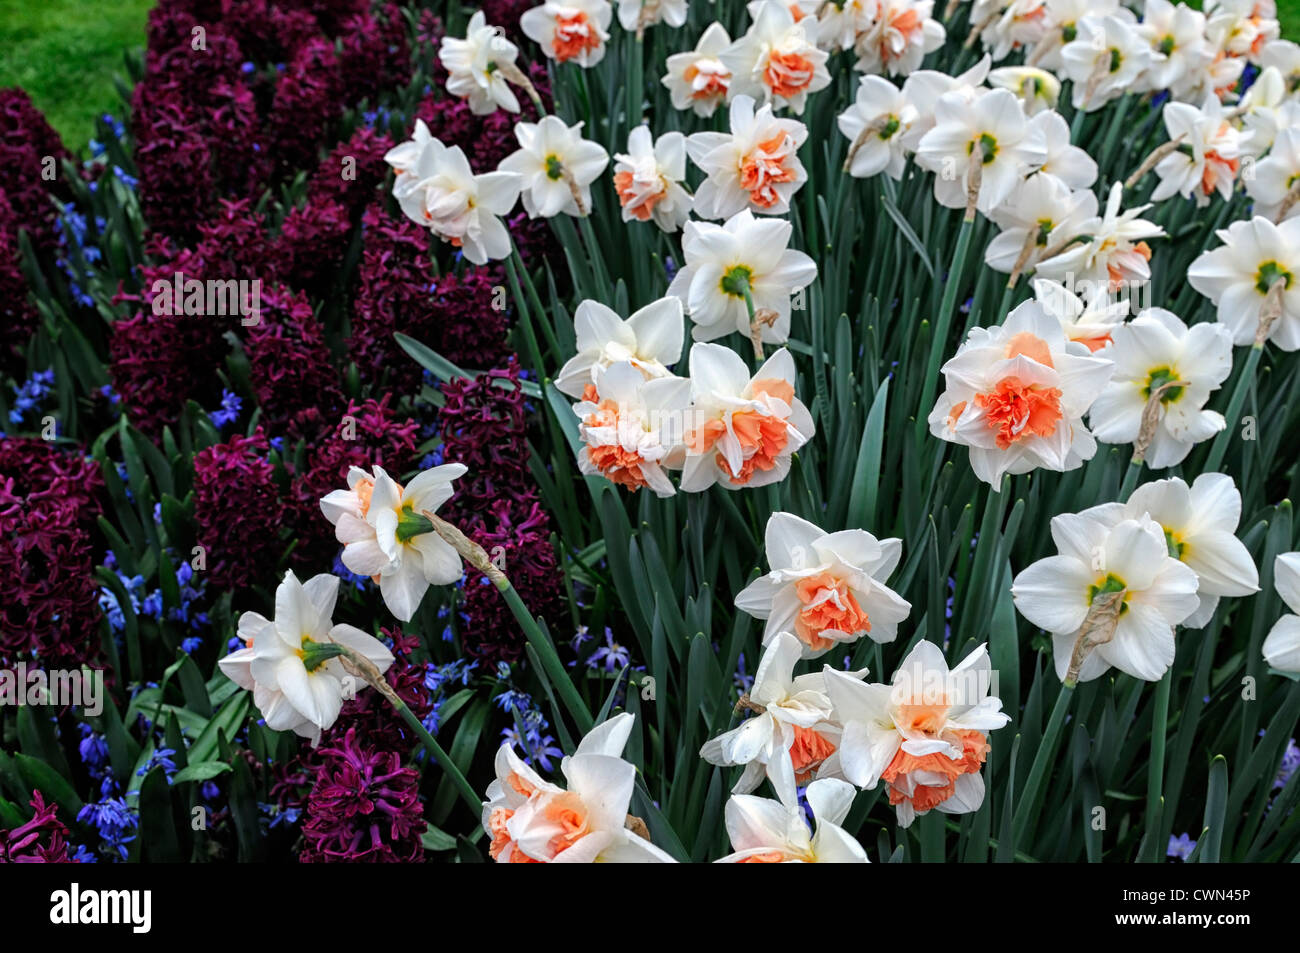 Narcissus my story hyacinth woodstock scilla siberica mix mixed planting scheme combination bulbs spring display - Stock Image